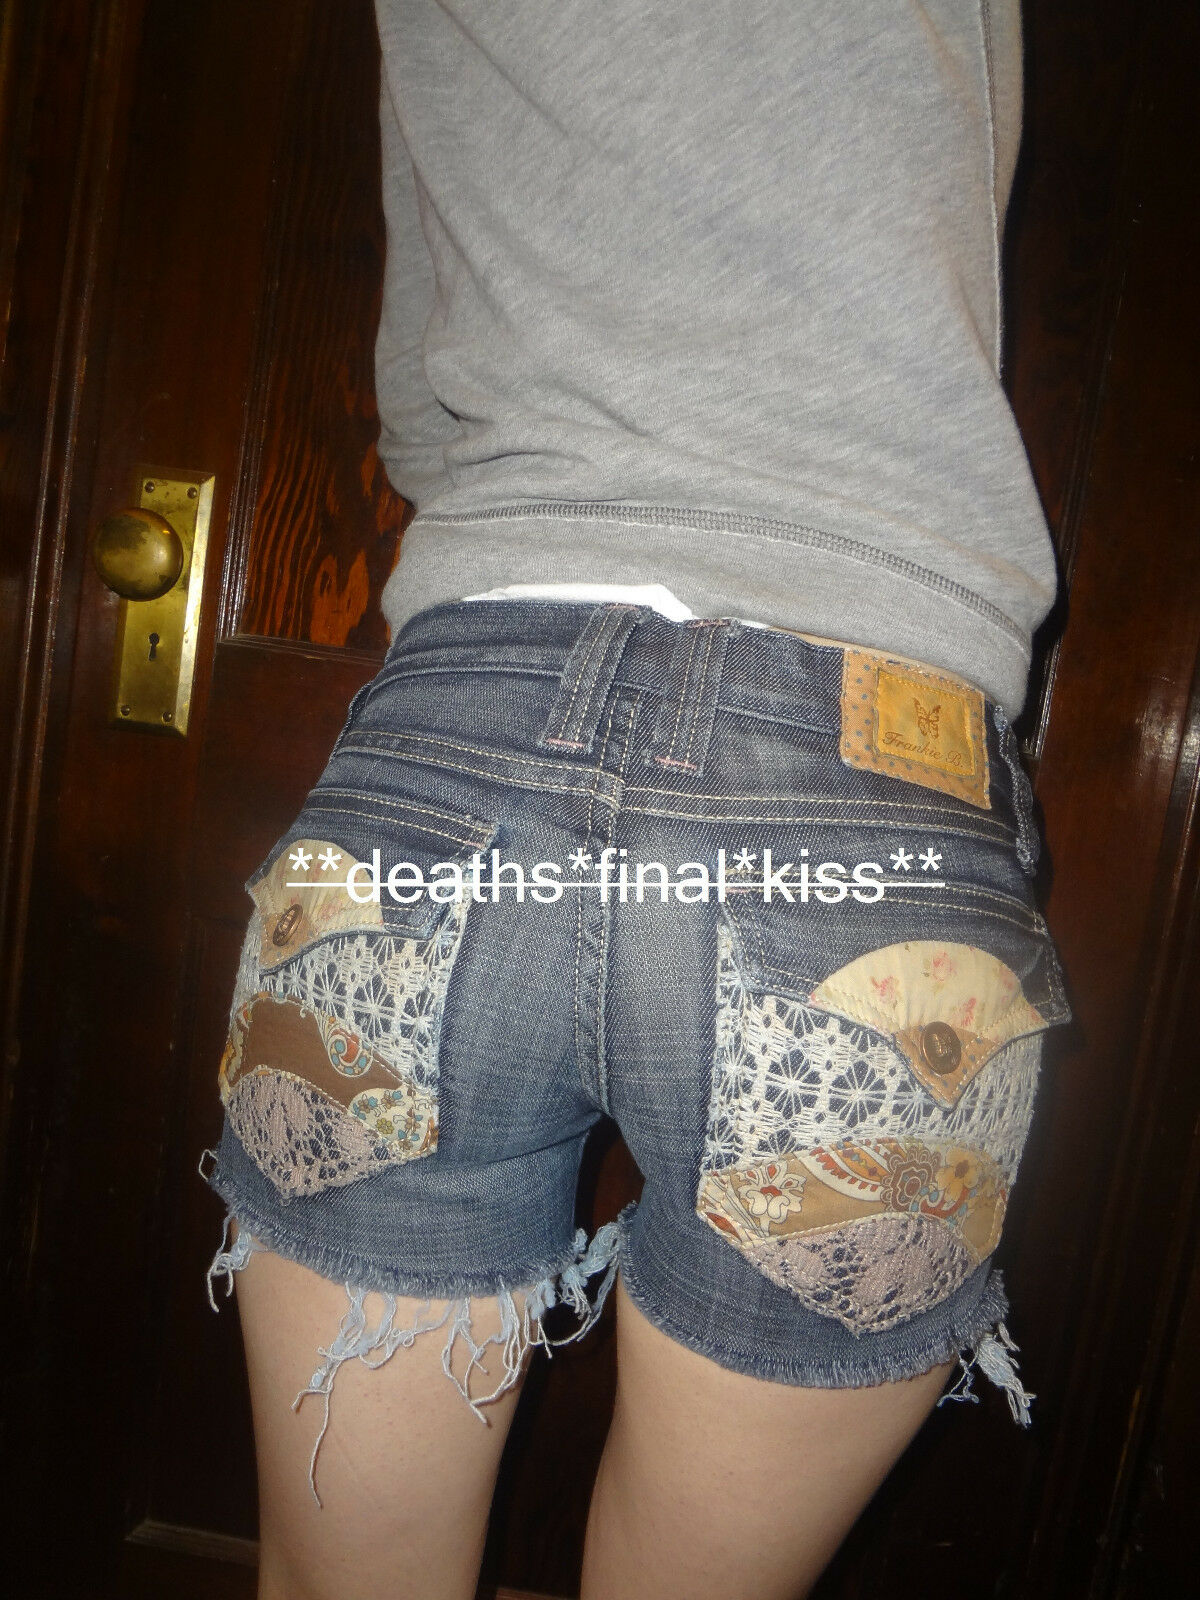 Frankie B ultra low rise patchwork lily pad jeans shorts dark wash 2 (24 25)